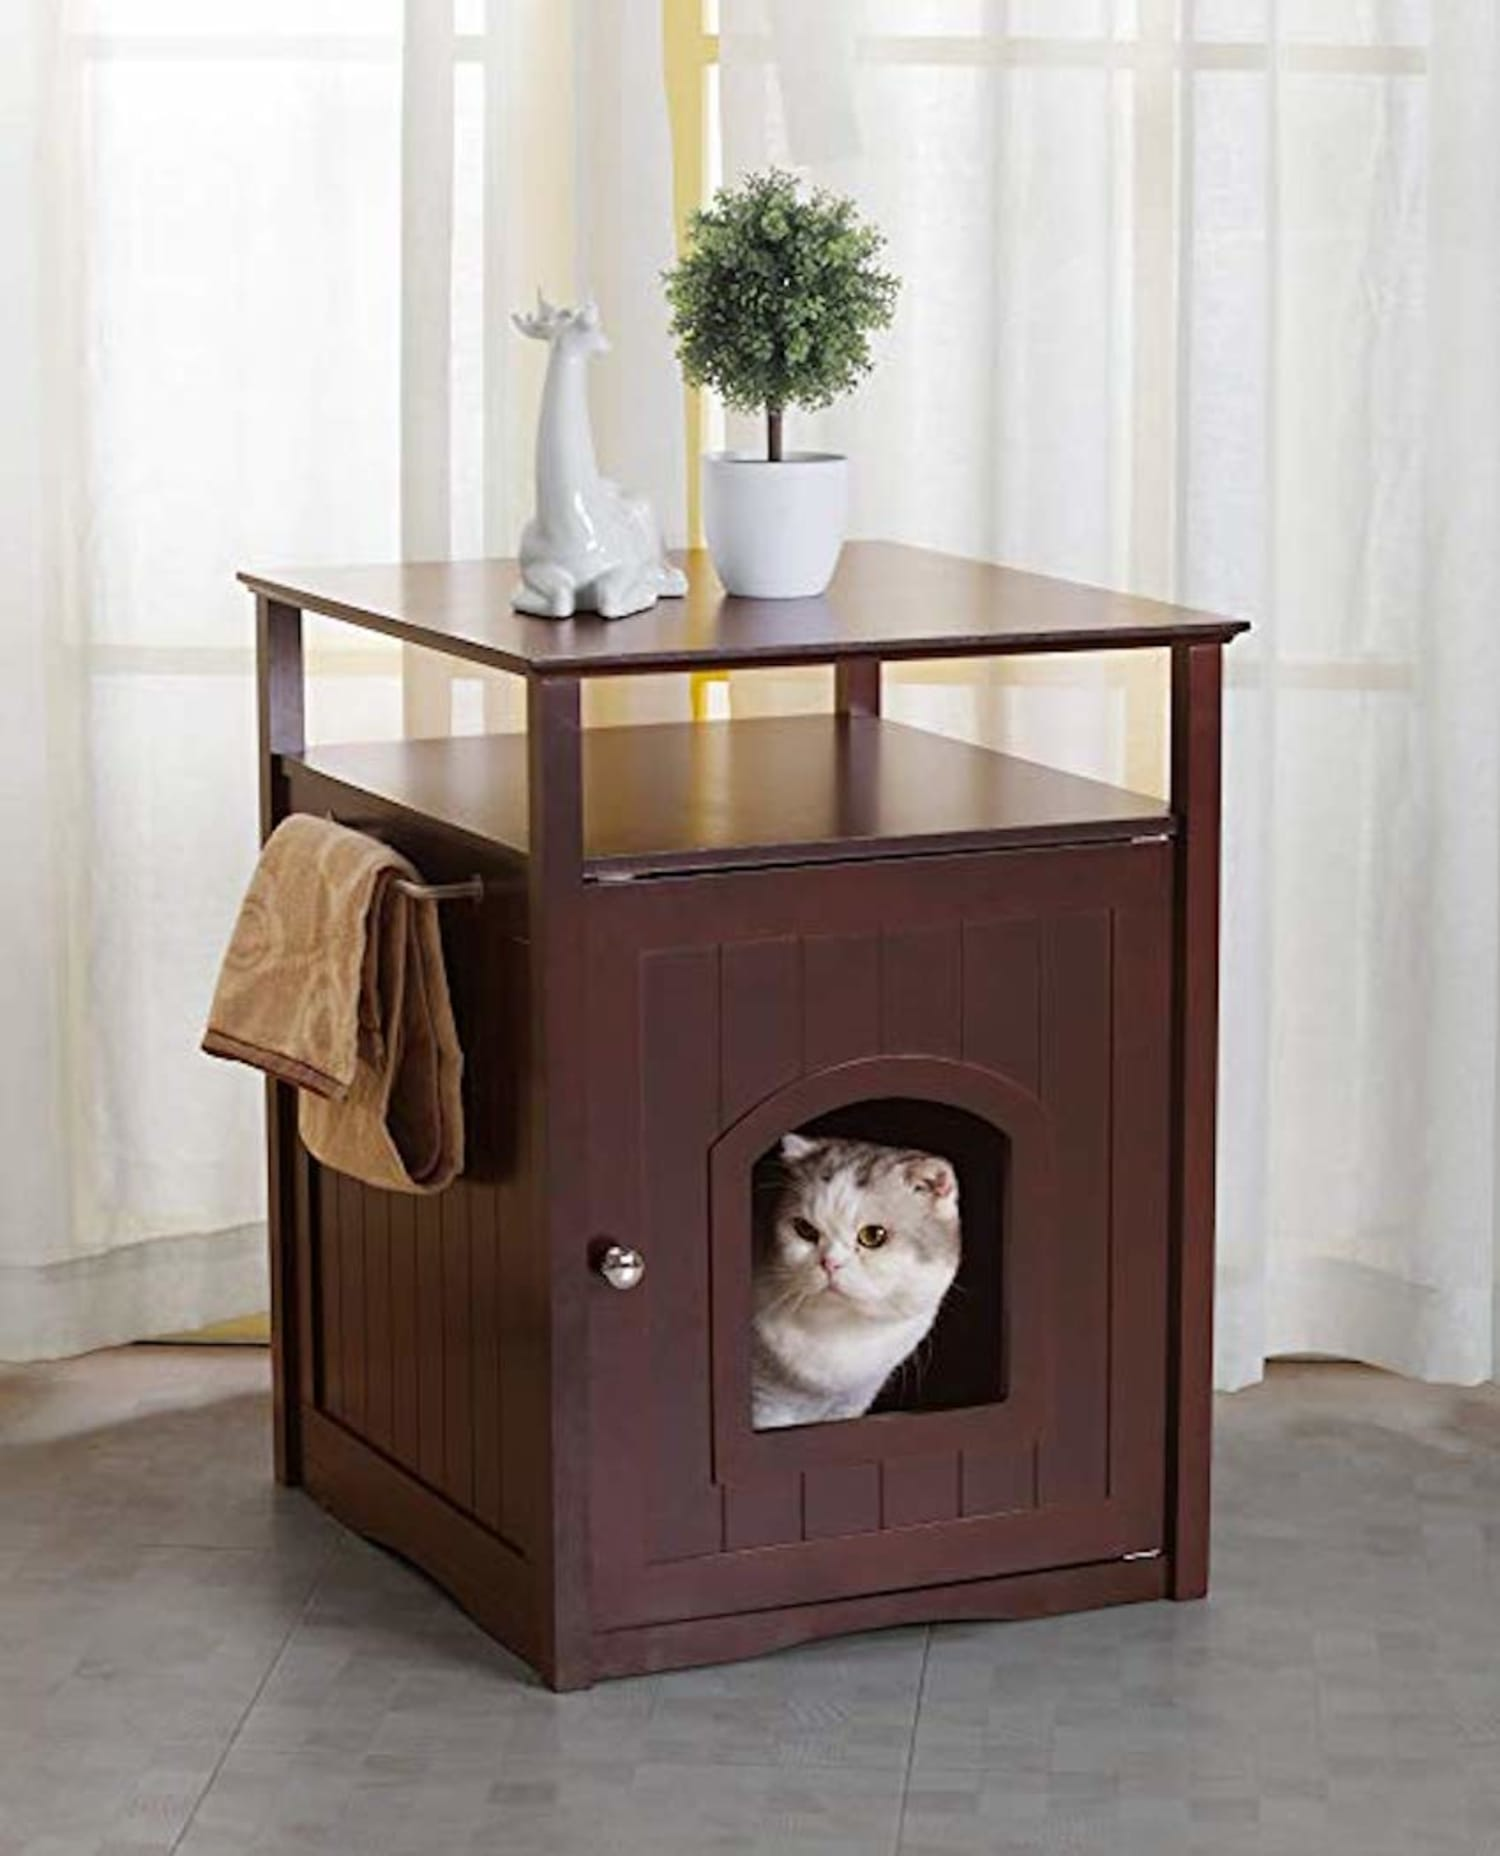 Cat Litter Box Hides In Plain Sight By Being Stylish